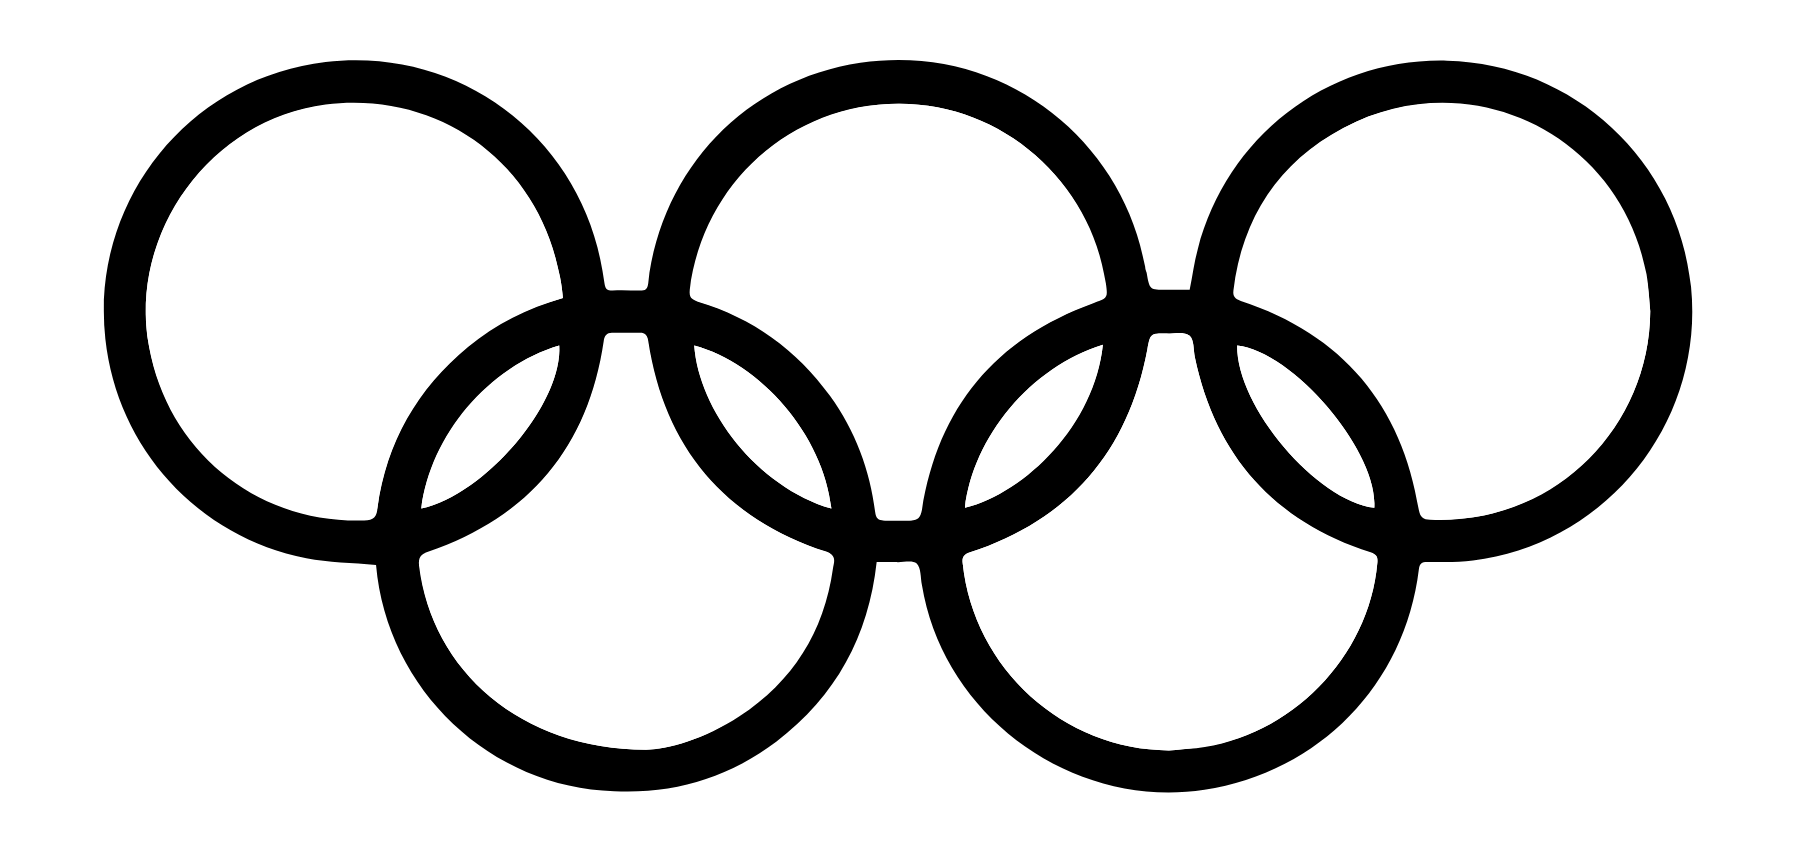 another one of the gestalt design principles, the principle of pragnanz is illustrated with the olympics logo